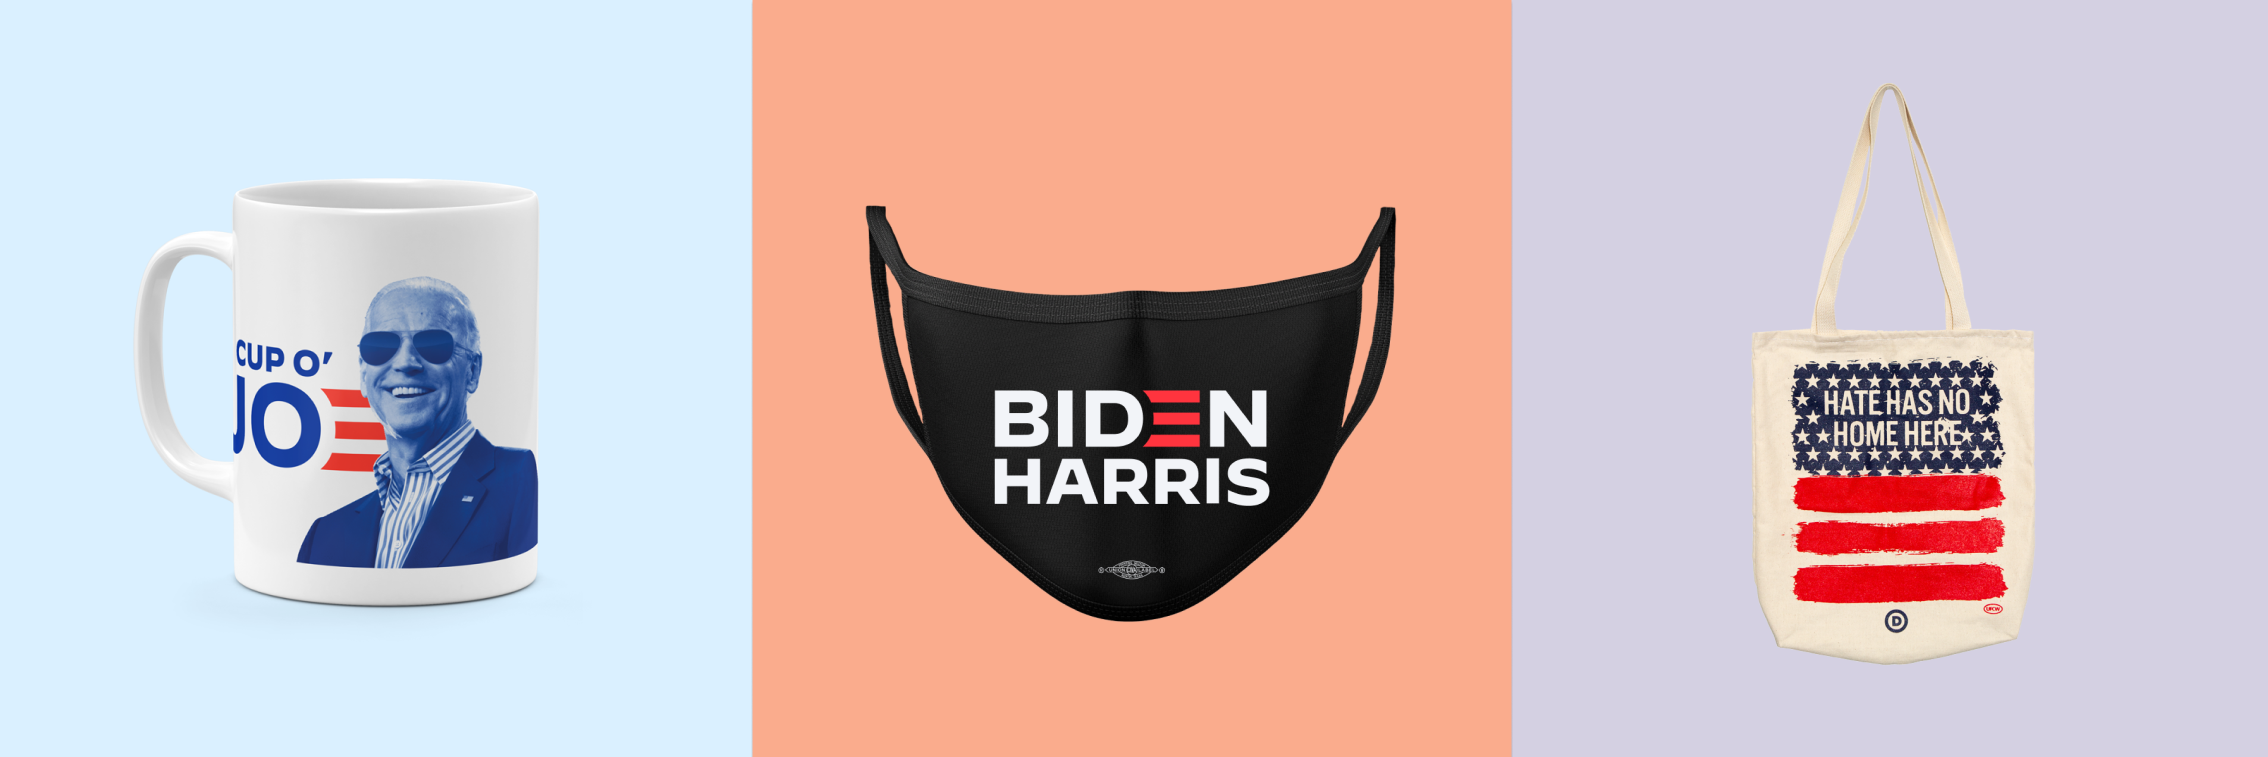 Cup of Joe Mug, Biden-Harris Mask, Hate Has No Home Here Tote